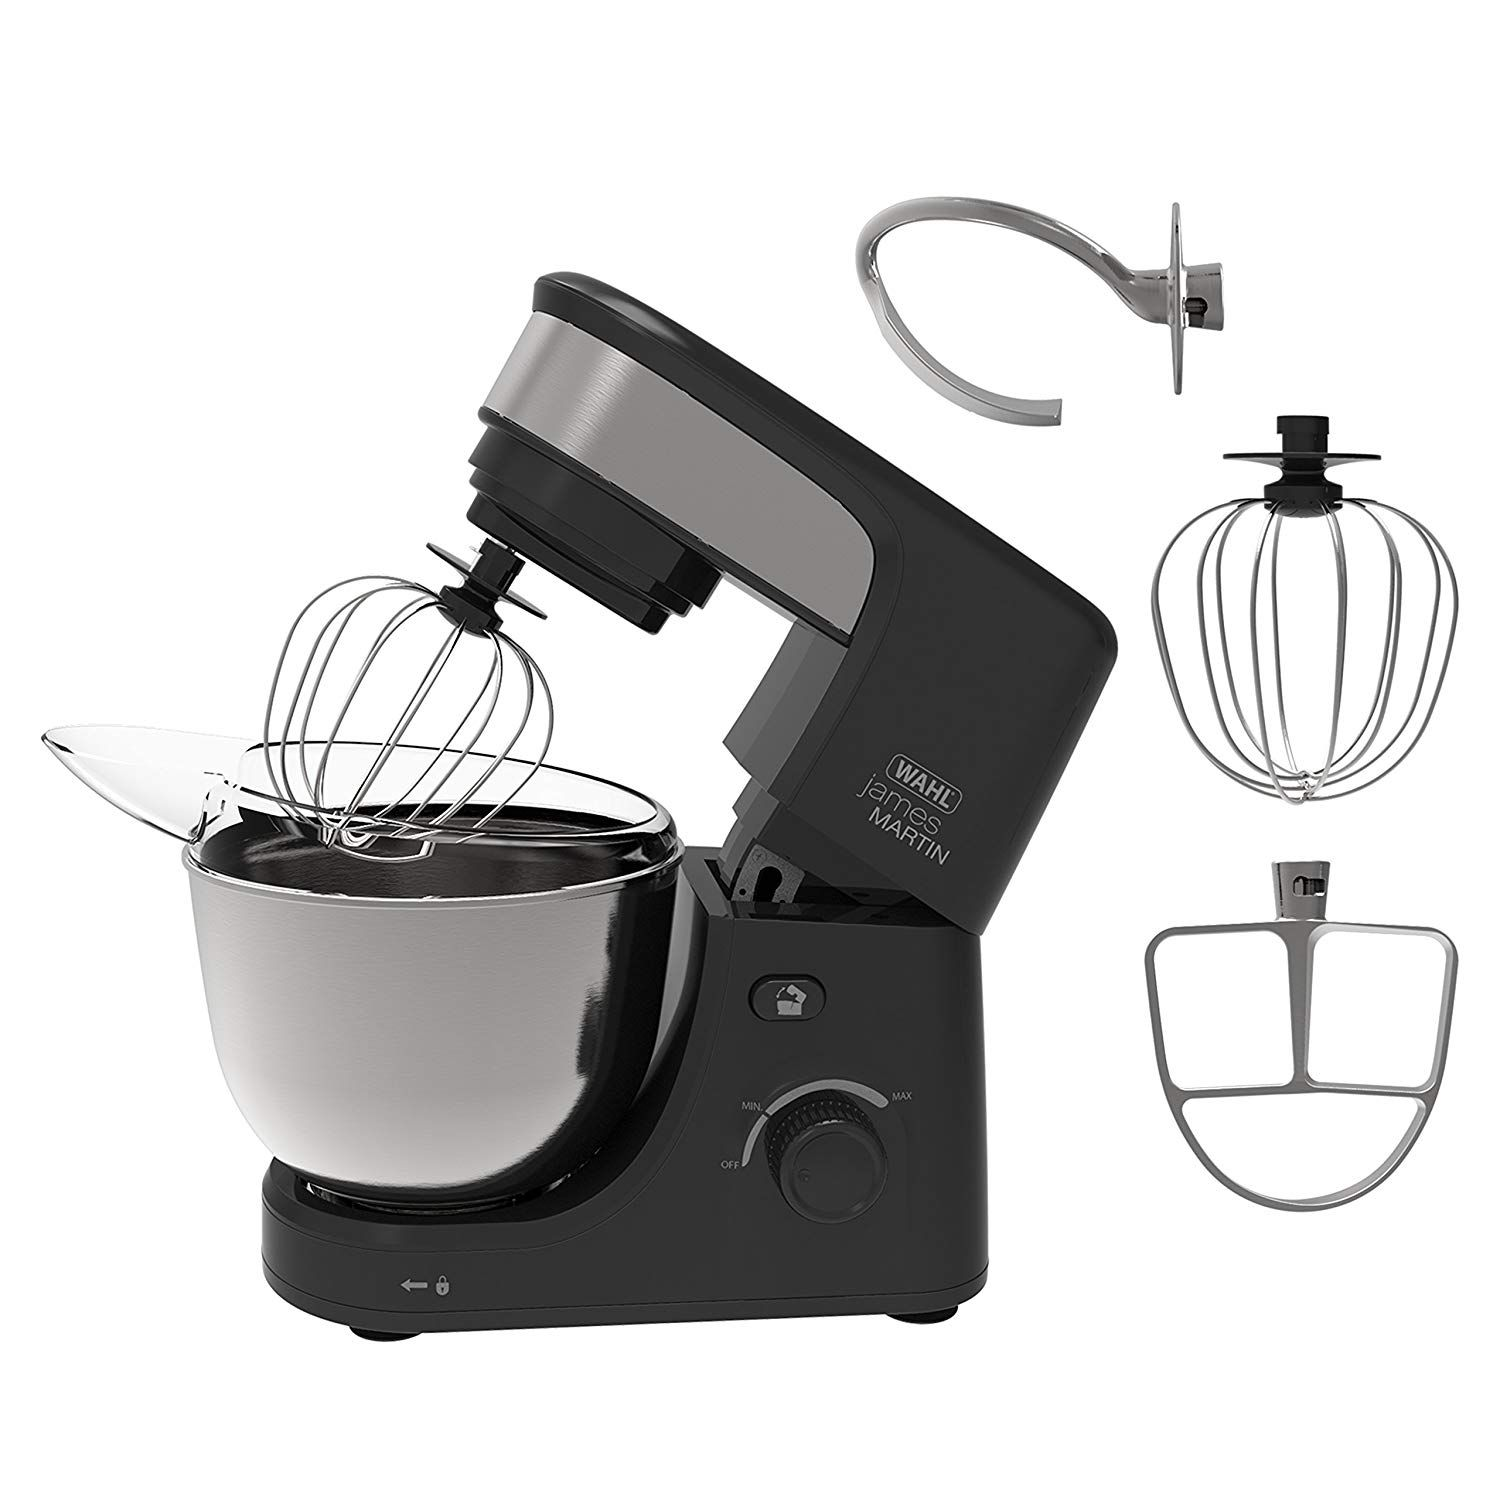 James martin by wahl stand mixer amazon kitchen u home